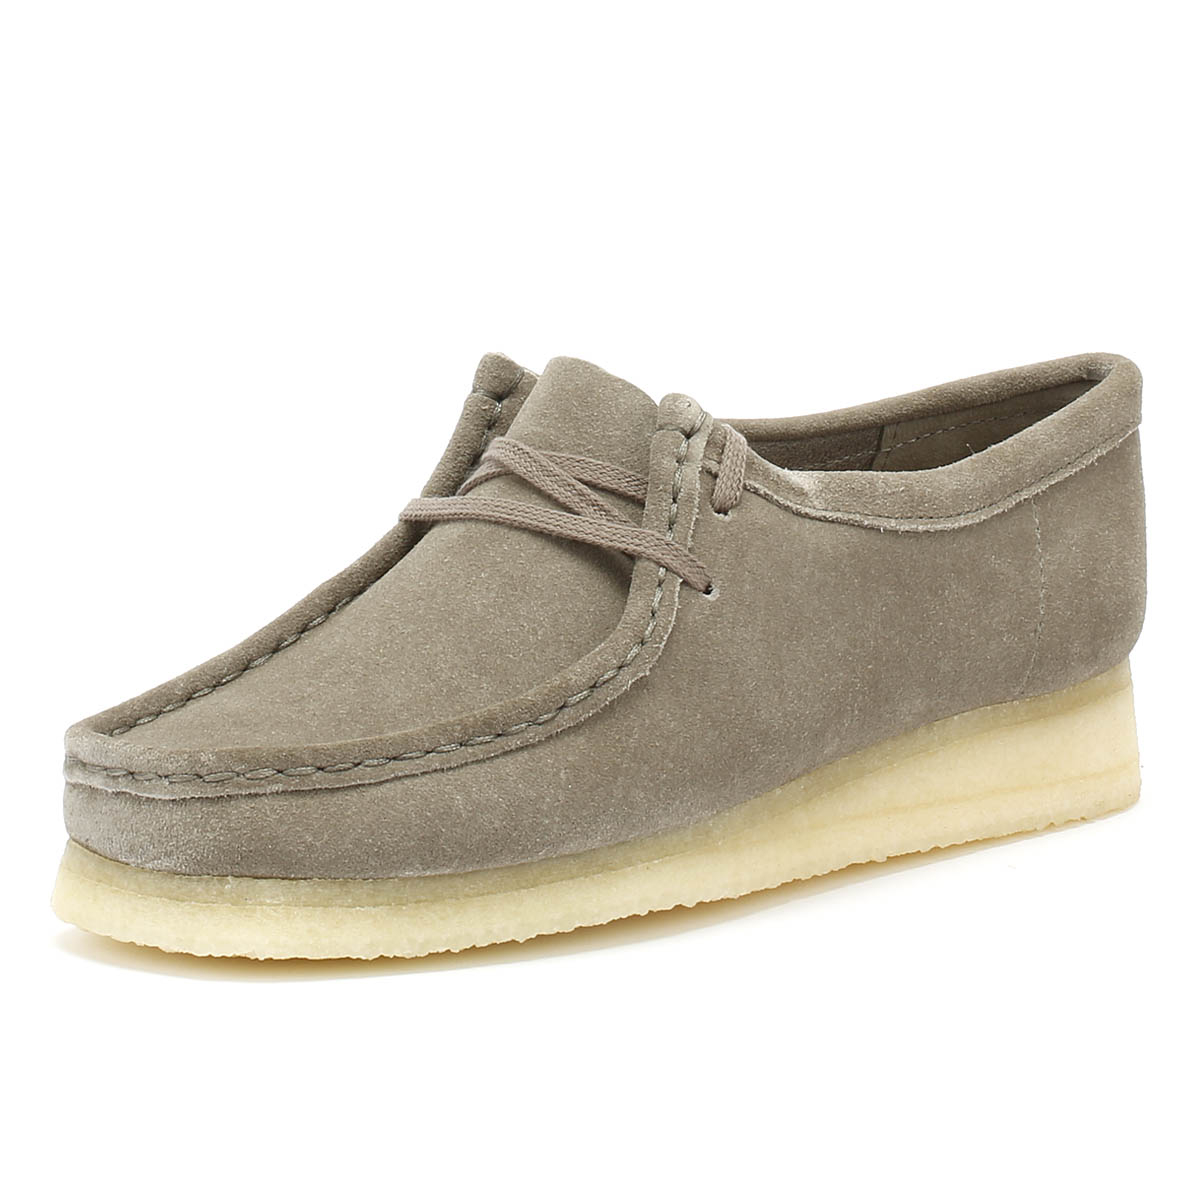 3f53d830 Details about Clarks Originals Womens Suede Shoes Grey Wallabee Premium  Casual